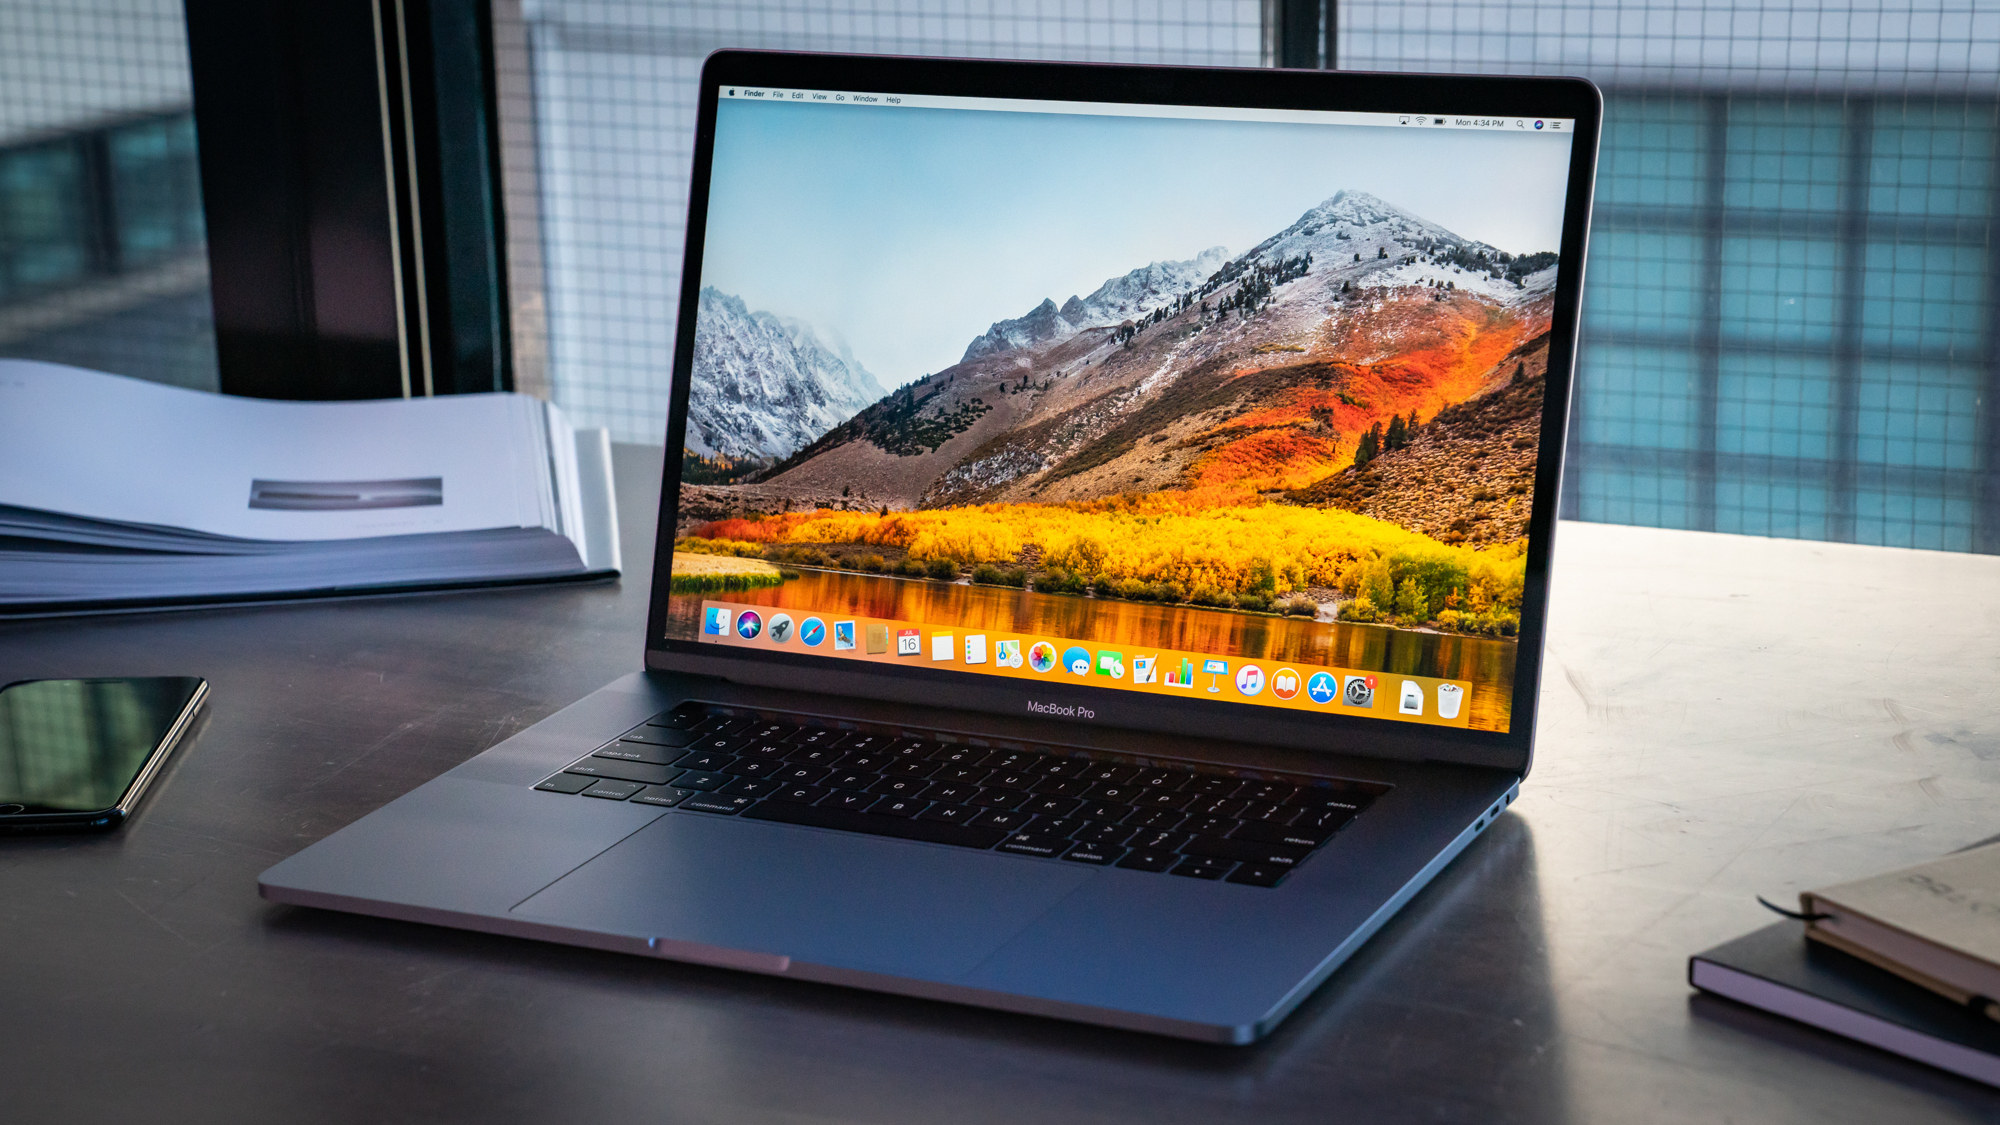 Buy Refurbished Apple Macbook